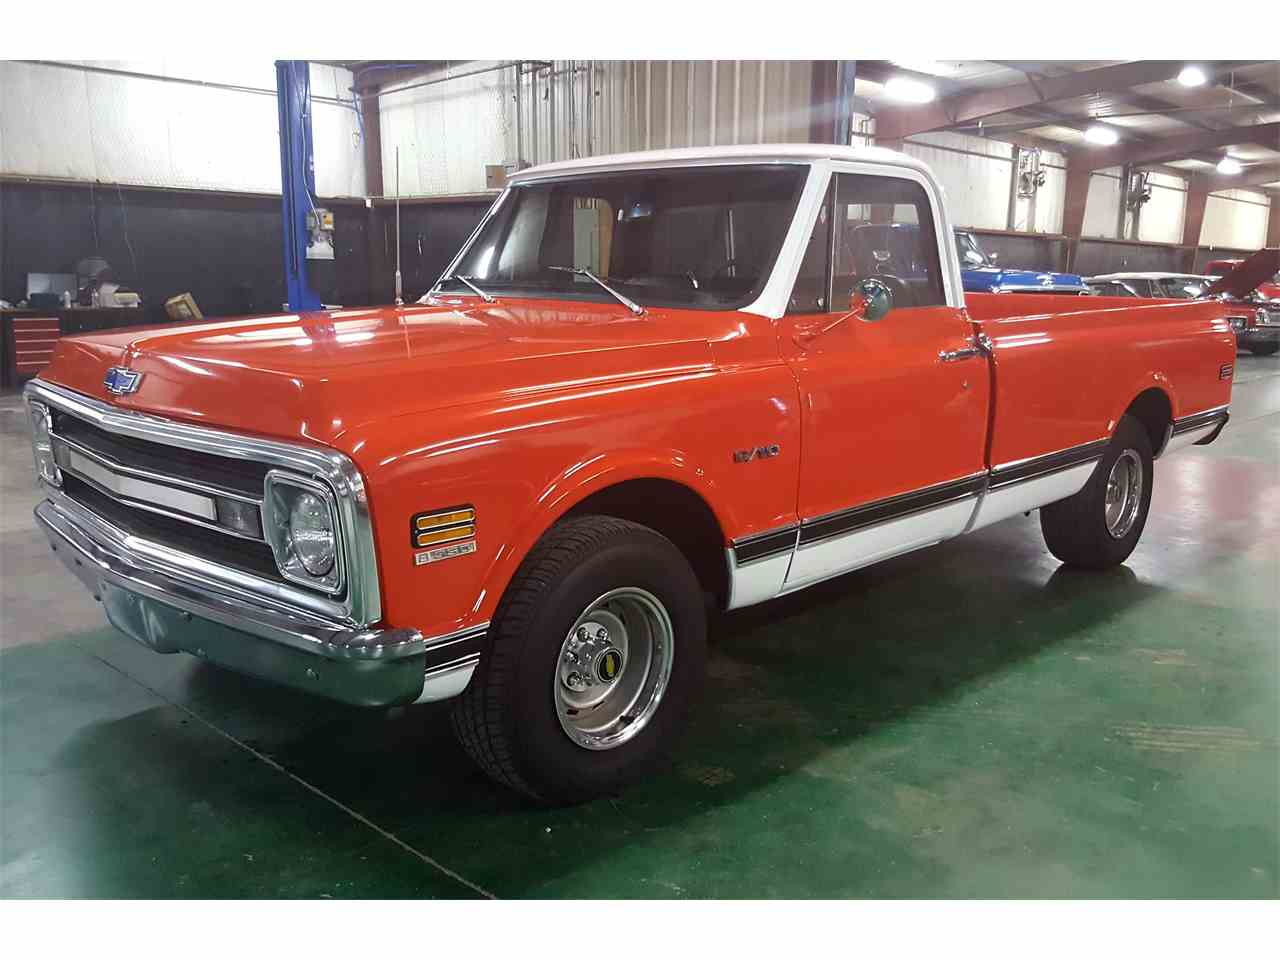 All Chevy 1969 chevrolet c10 for sale : 1969 Chevrolet C10 for Sale | ClassicCars.com | CC-1035075